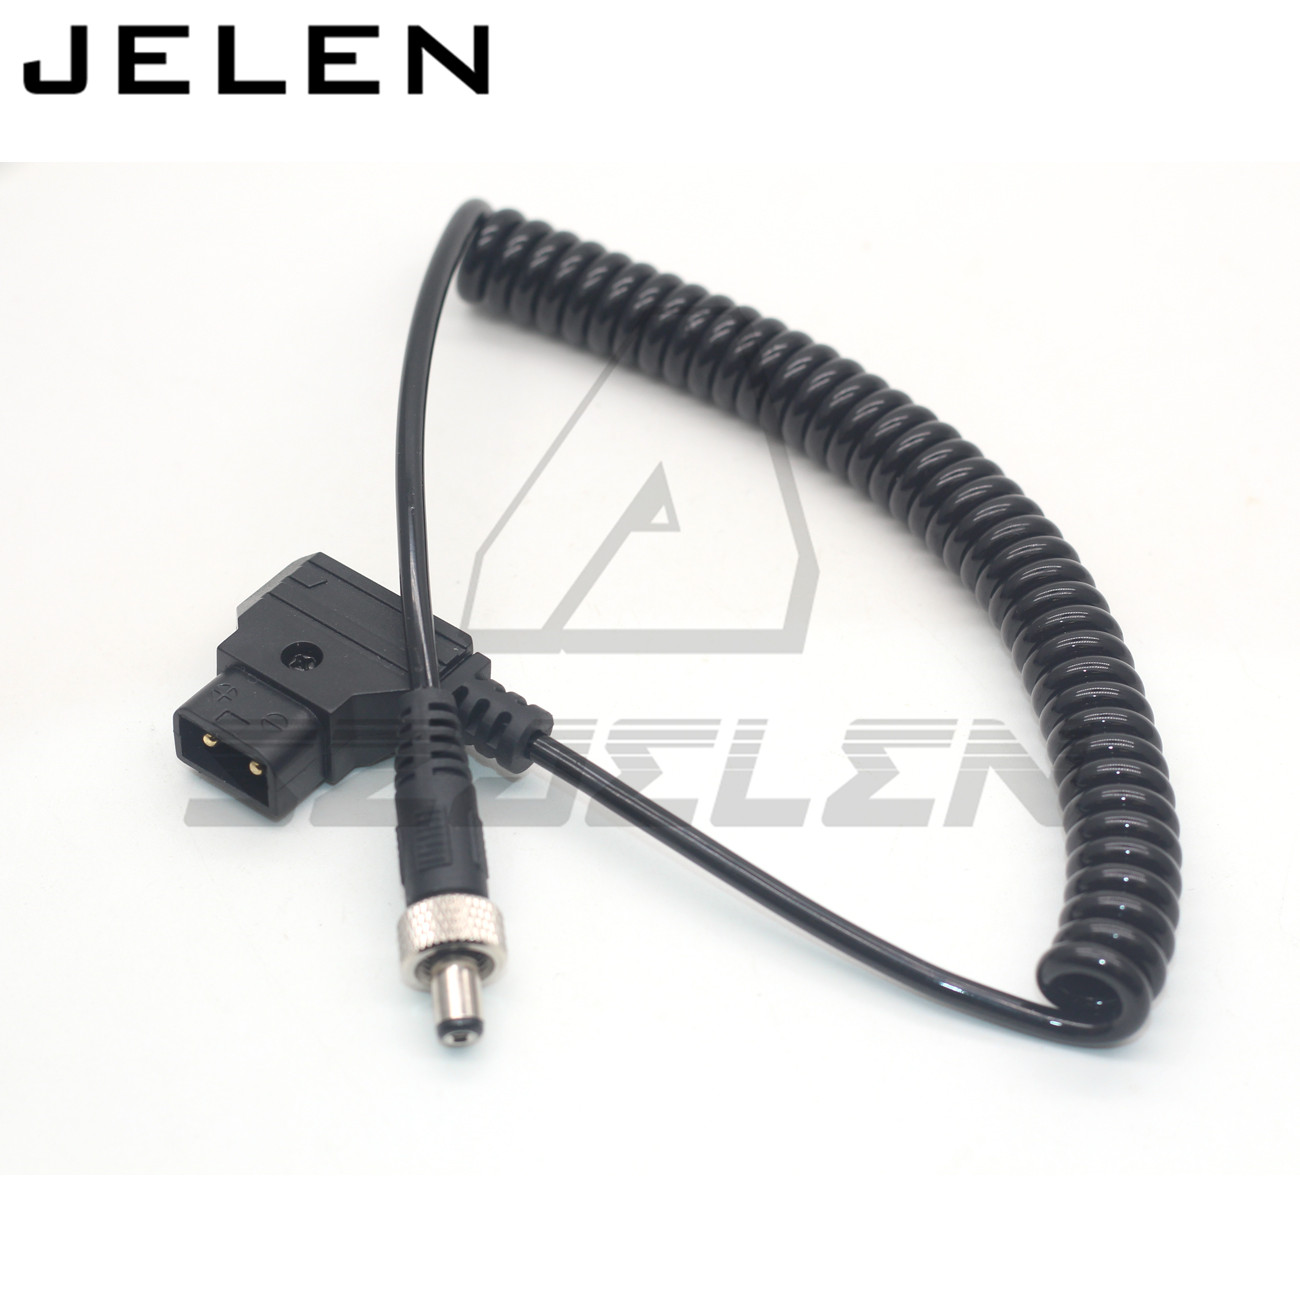 D-TAP To DC2.1 Screws Power Cable For ATOMOS Monitor Power Cord, Lectrosonics Venue VR IFB  Power Cable,  Video Devices PIX-E5/7